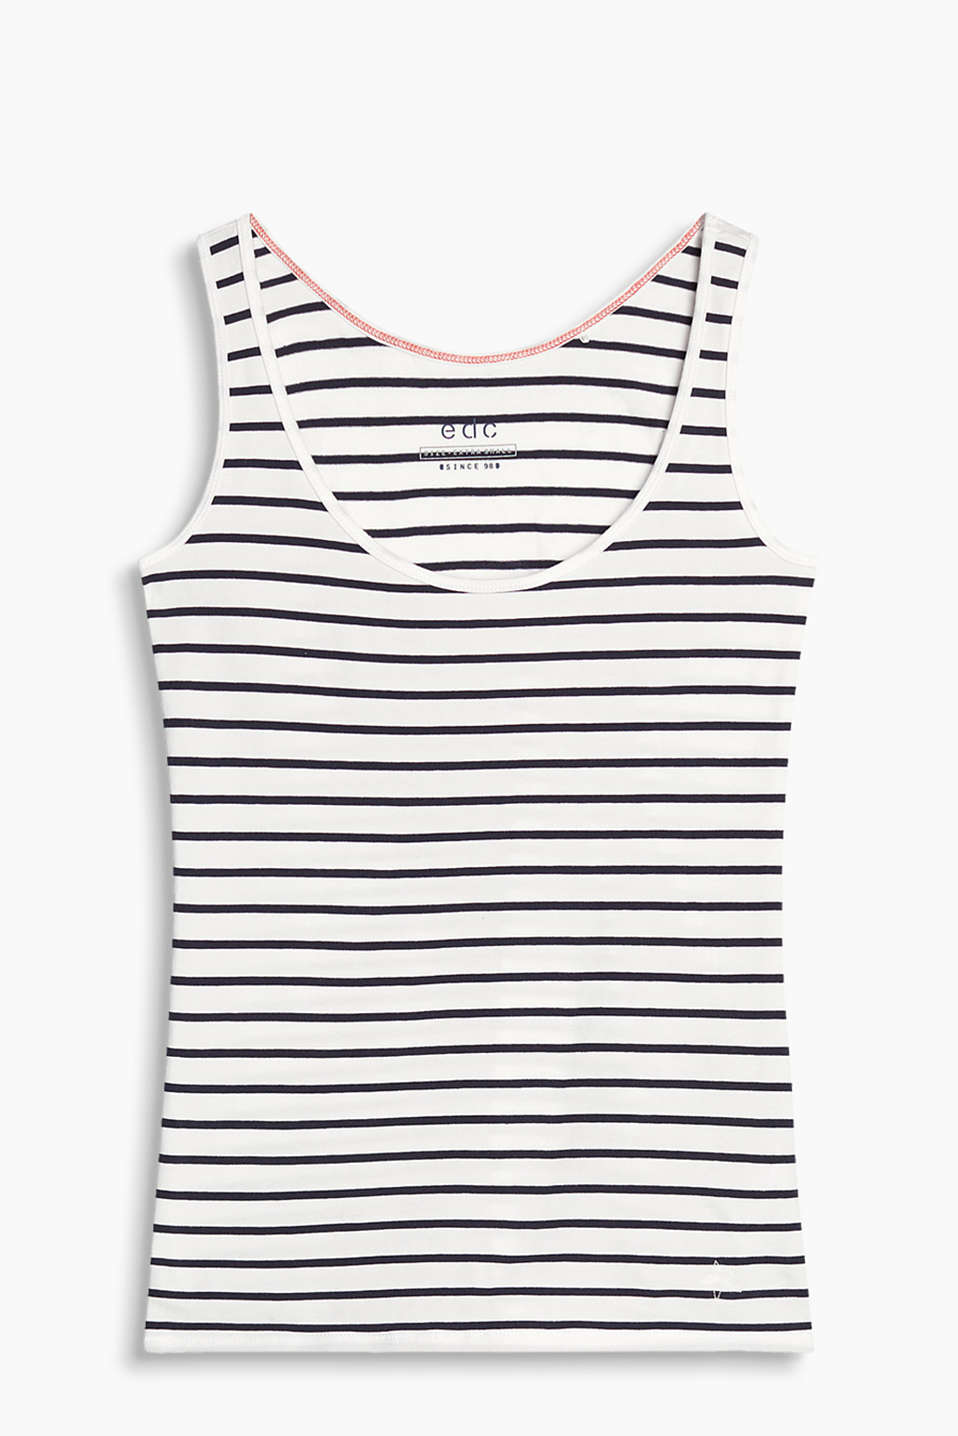 Vest in a striped look with added stretch for comfort